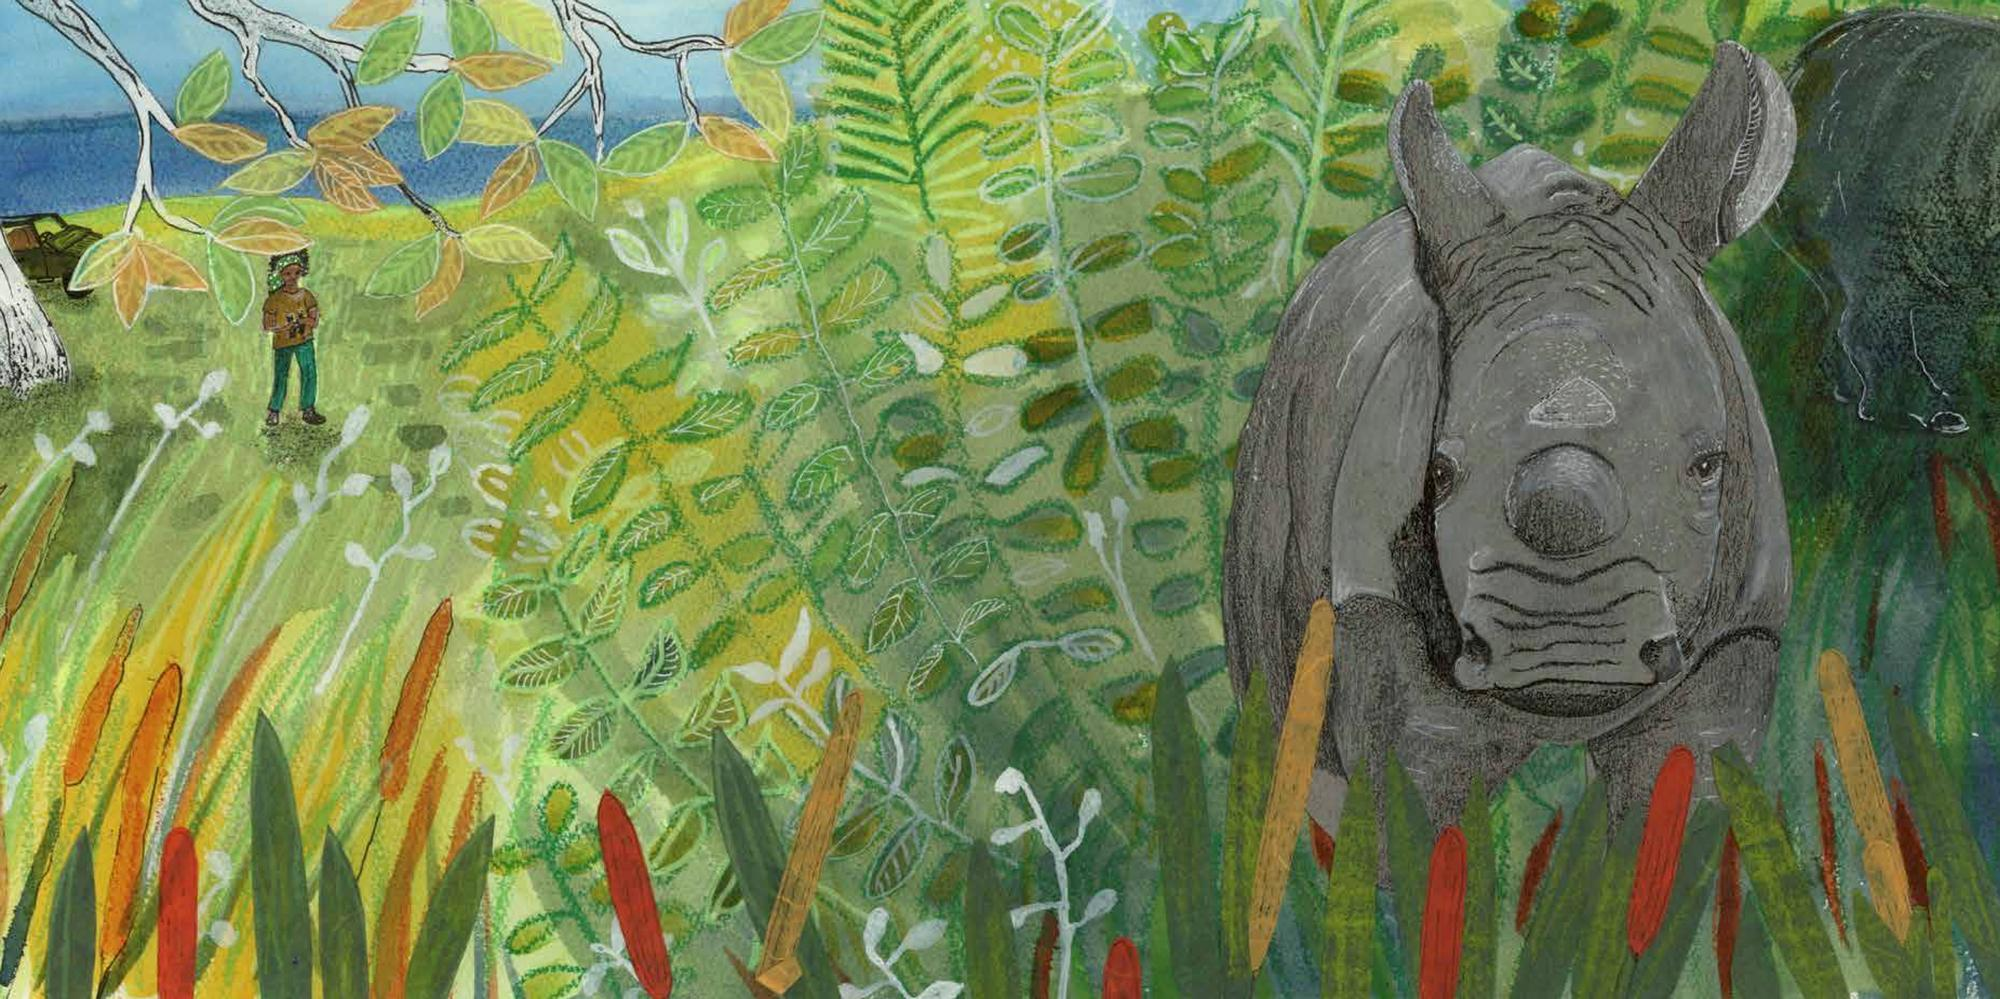 Award Winning Children's Author Helping To Protect The Last Rhinos